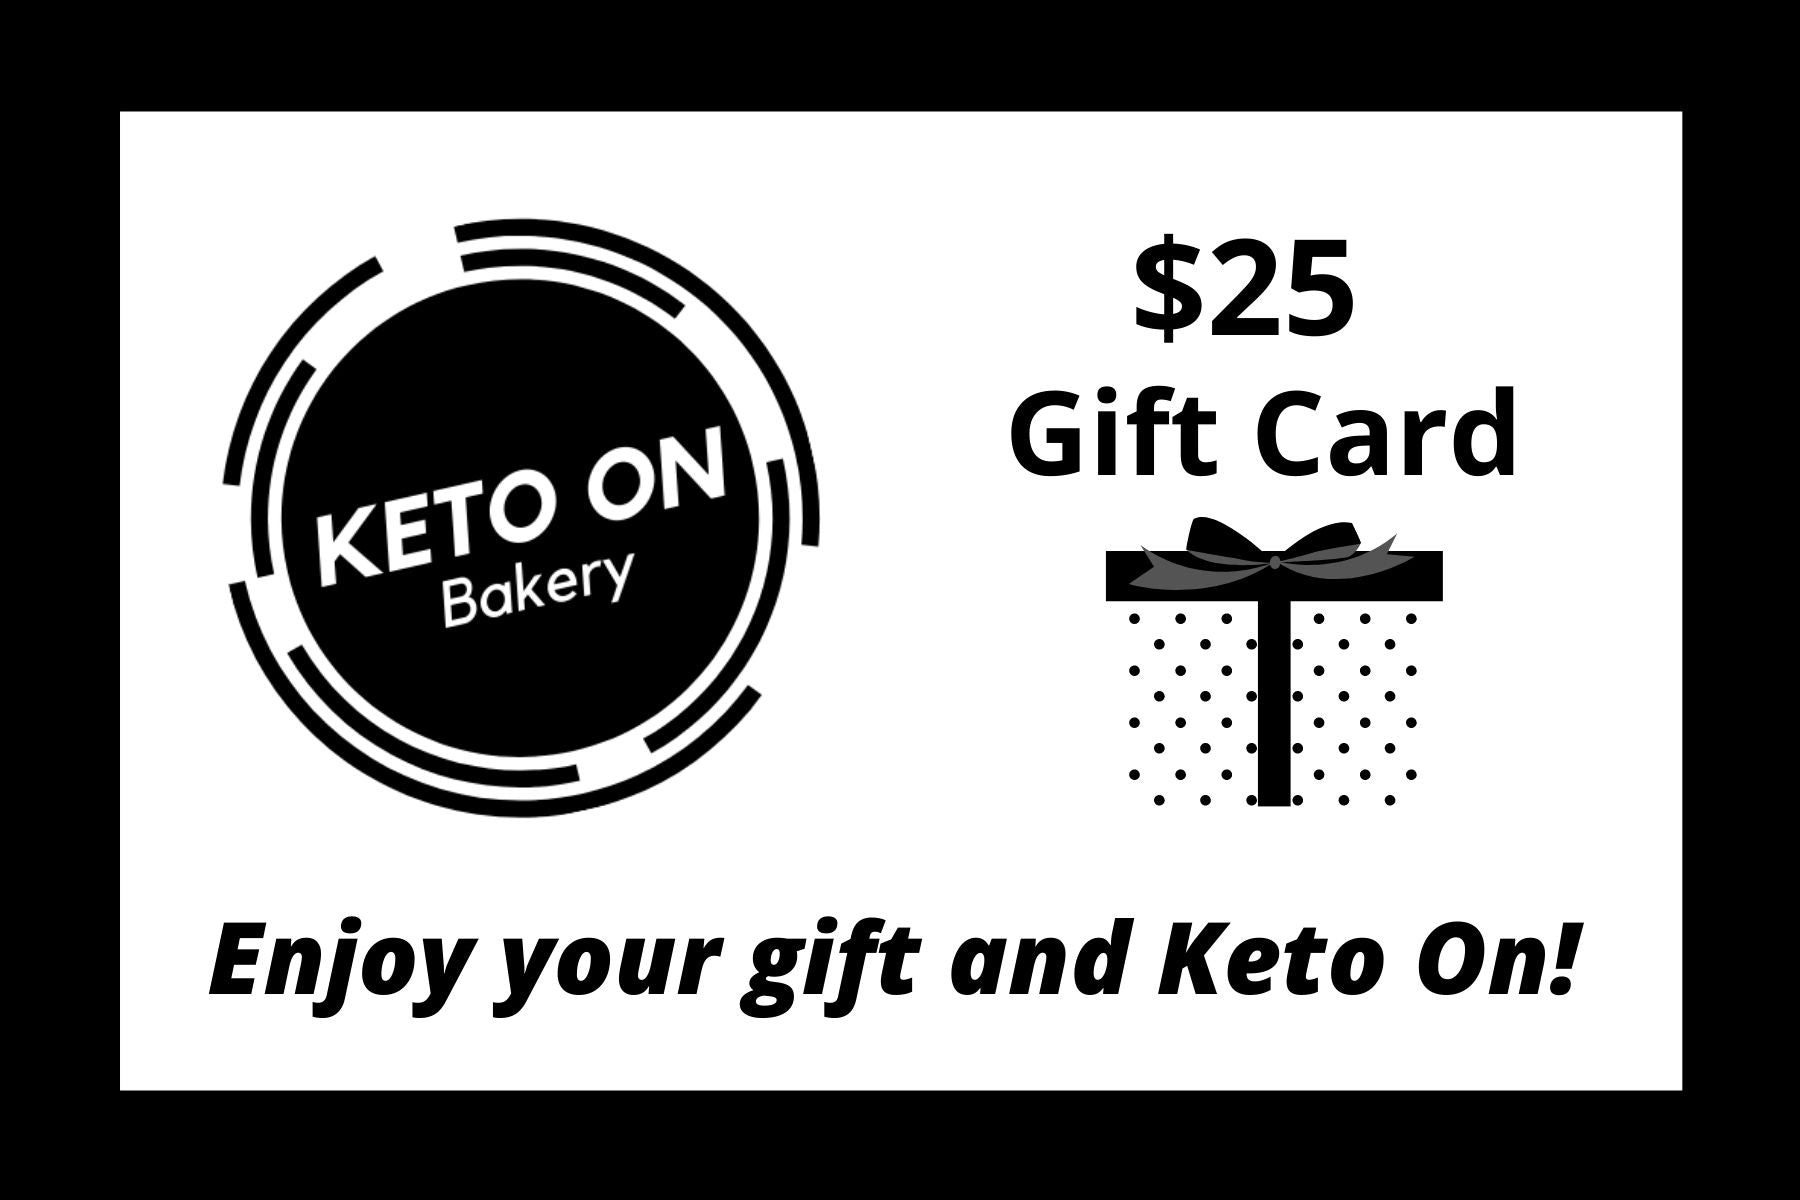 Keto On Bakery, $25 gift card, low carb, sugar free, ketogenic